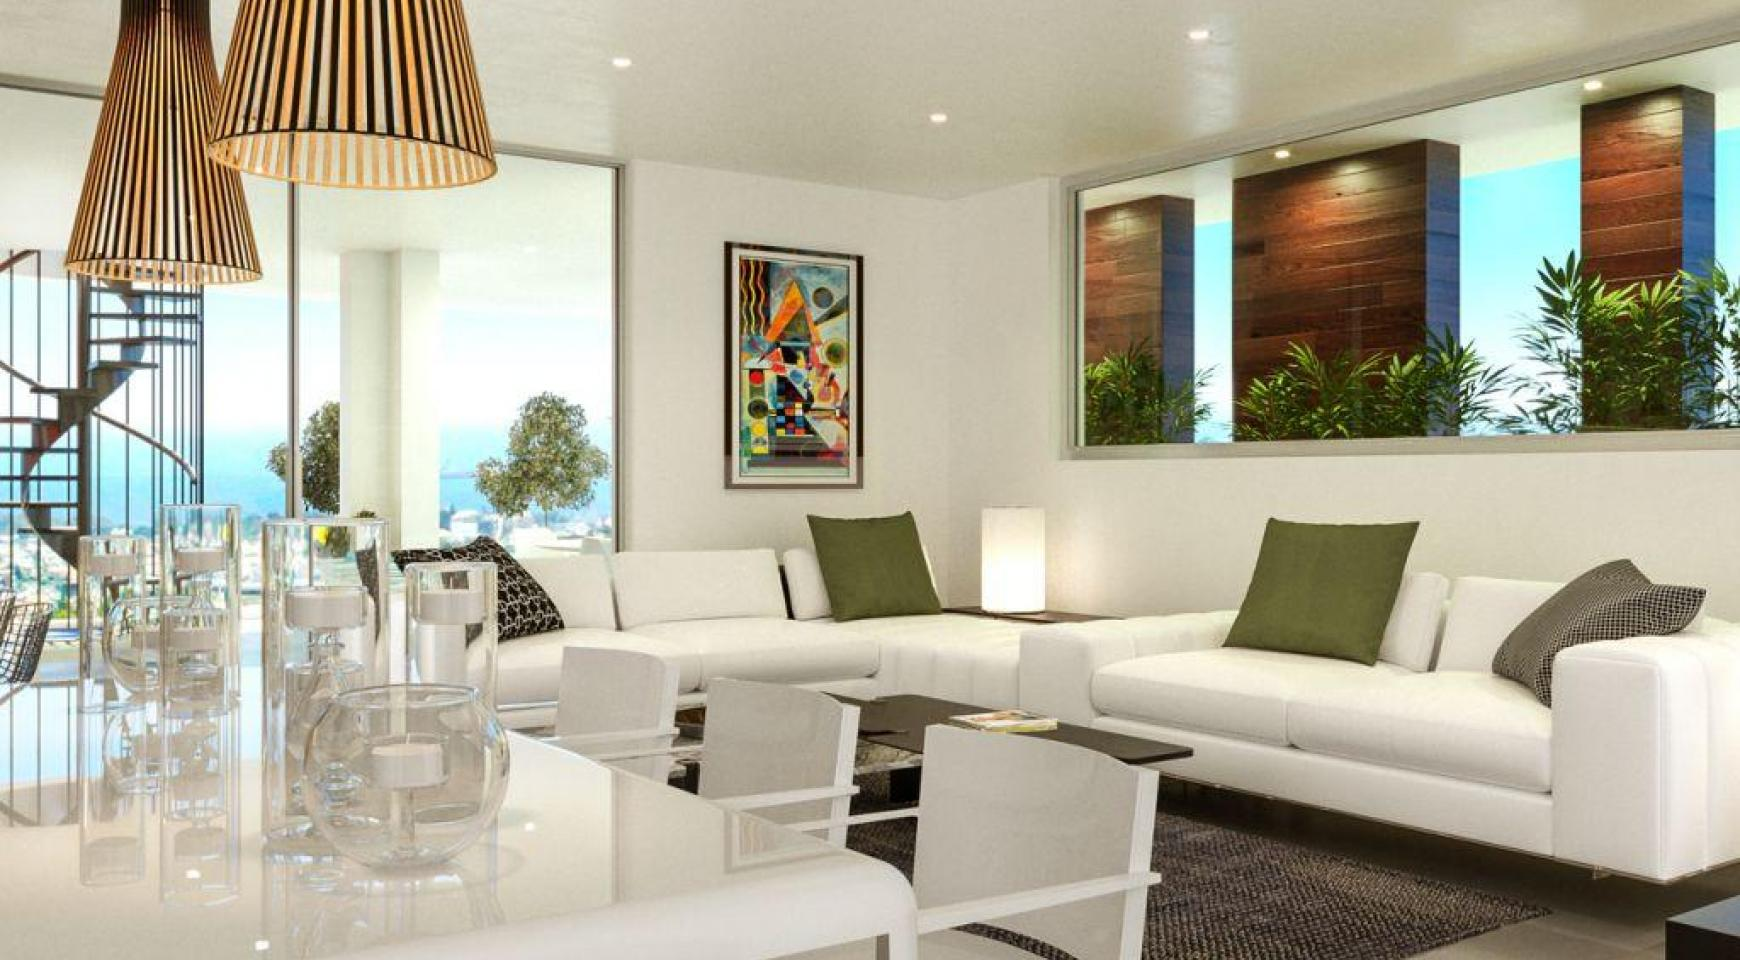 Contemporary 3 Bedroom Penthouse with a Private Swimming Pool - 2